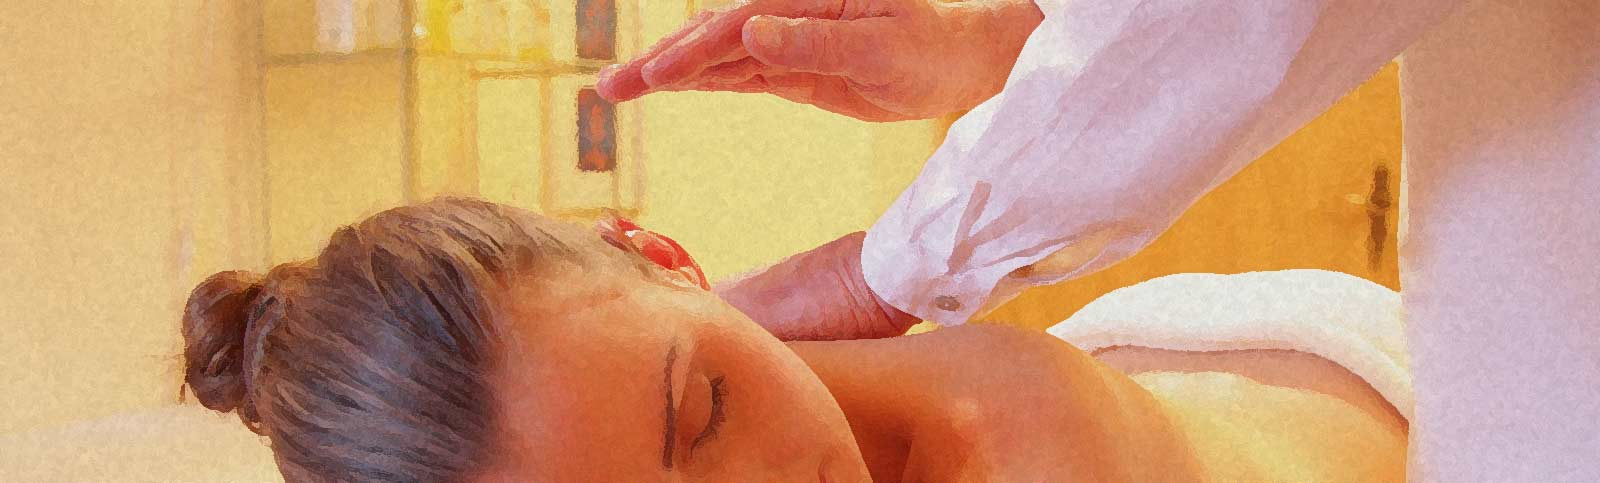 Tips for Running a Successful Day Spa